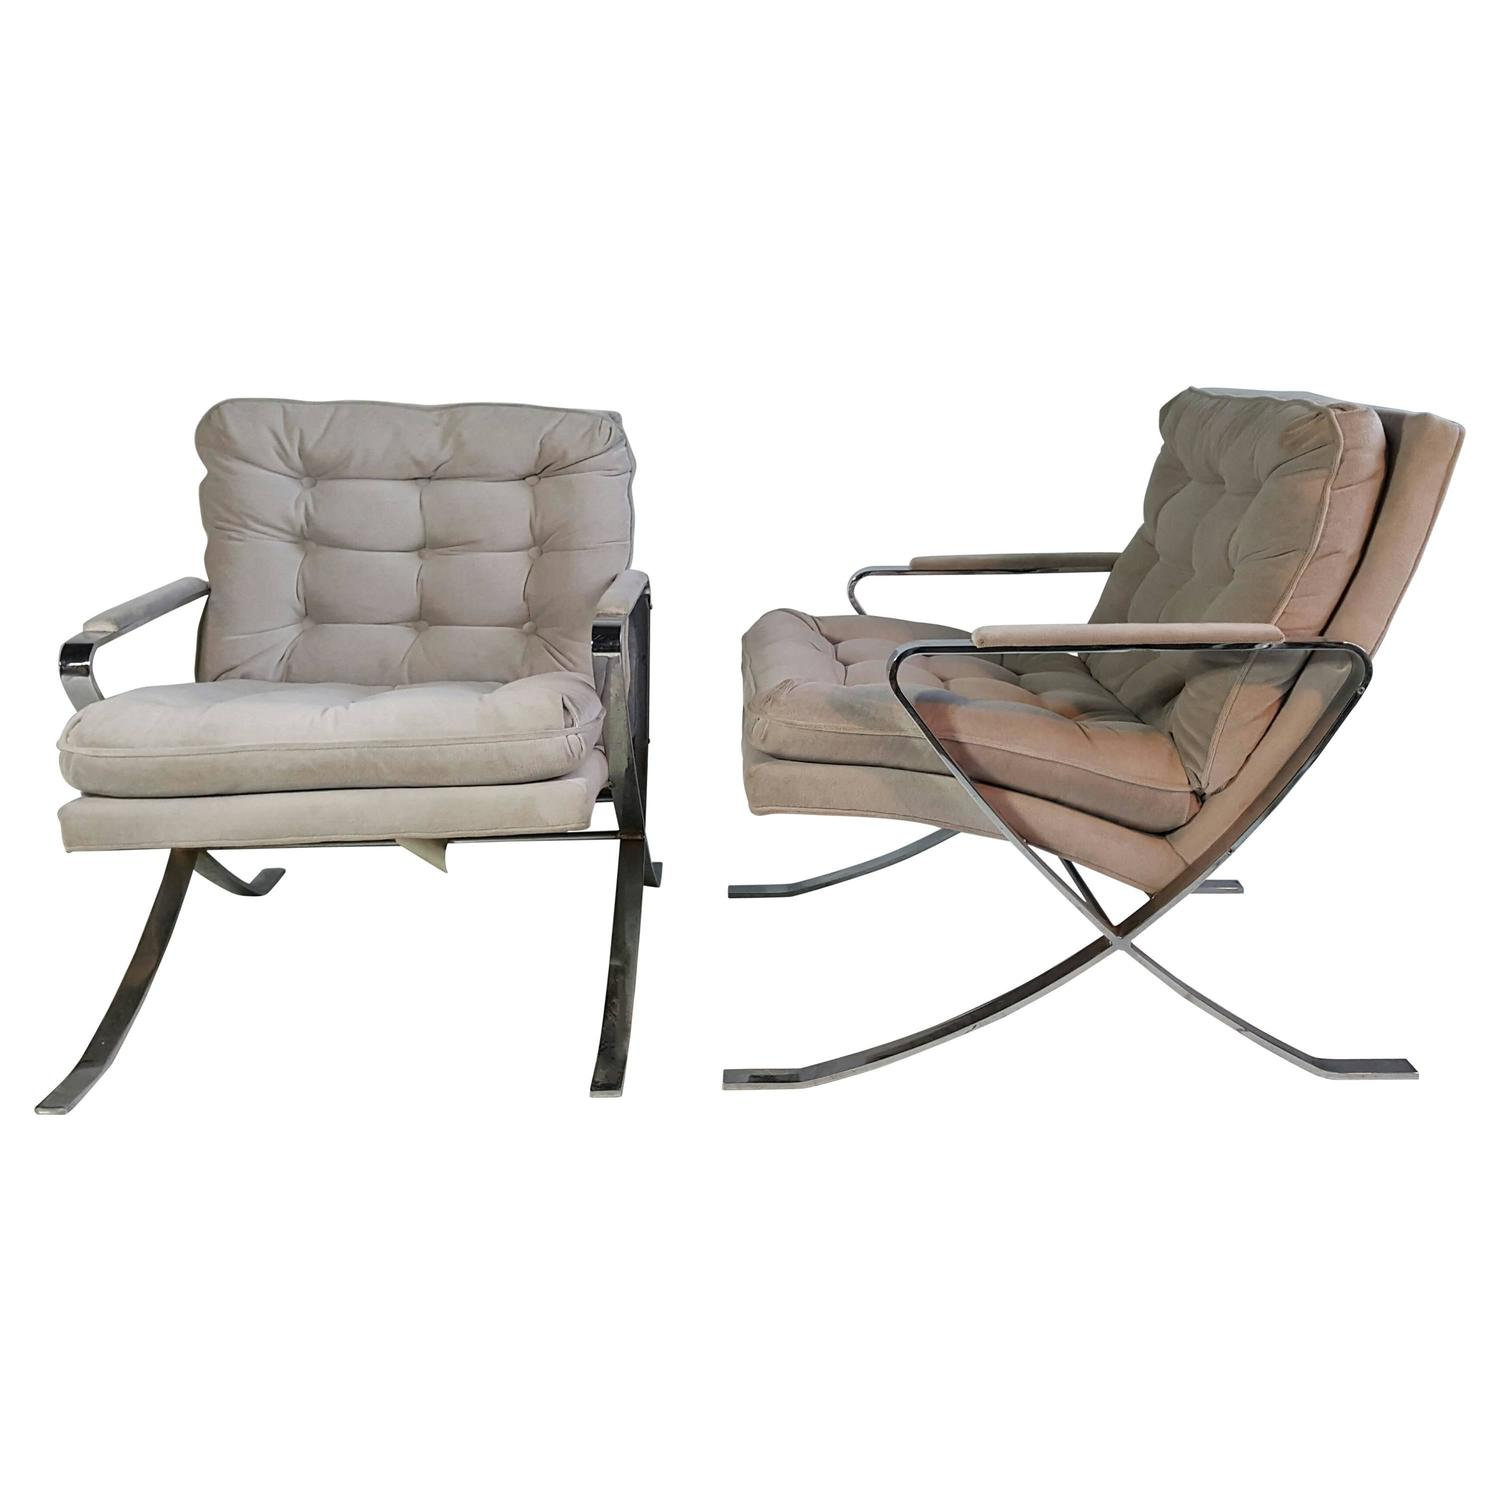 vintage chrome lounge chairs for sale at 1stdibs